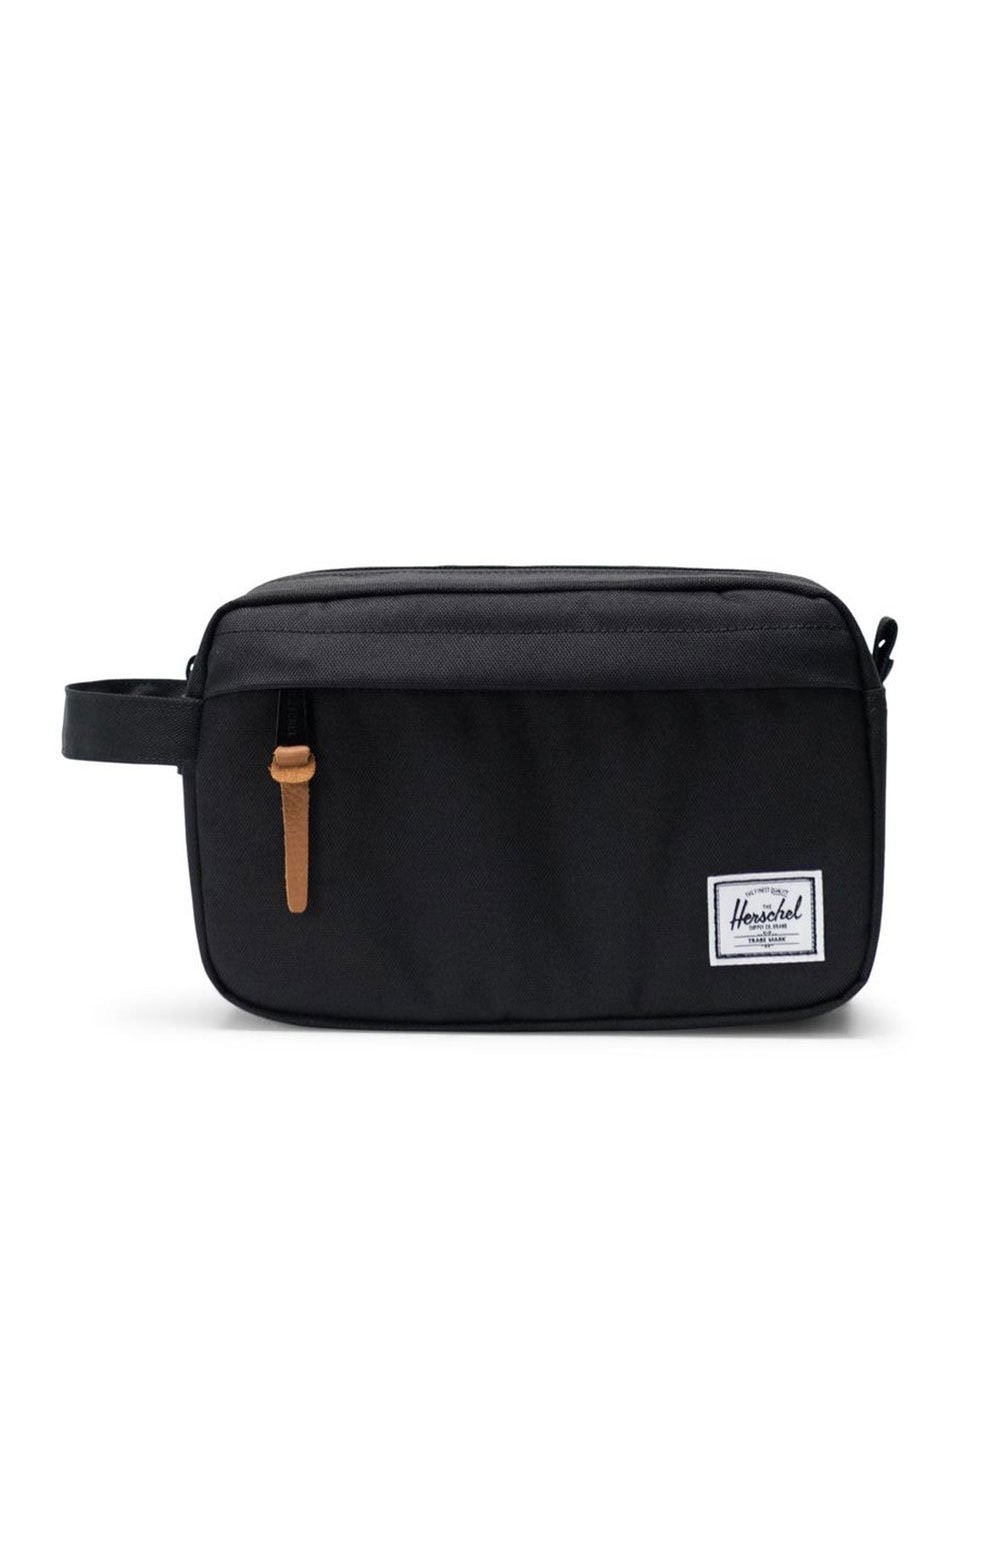 Chapter Travel Kit - Black/Brown Leather Pull